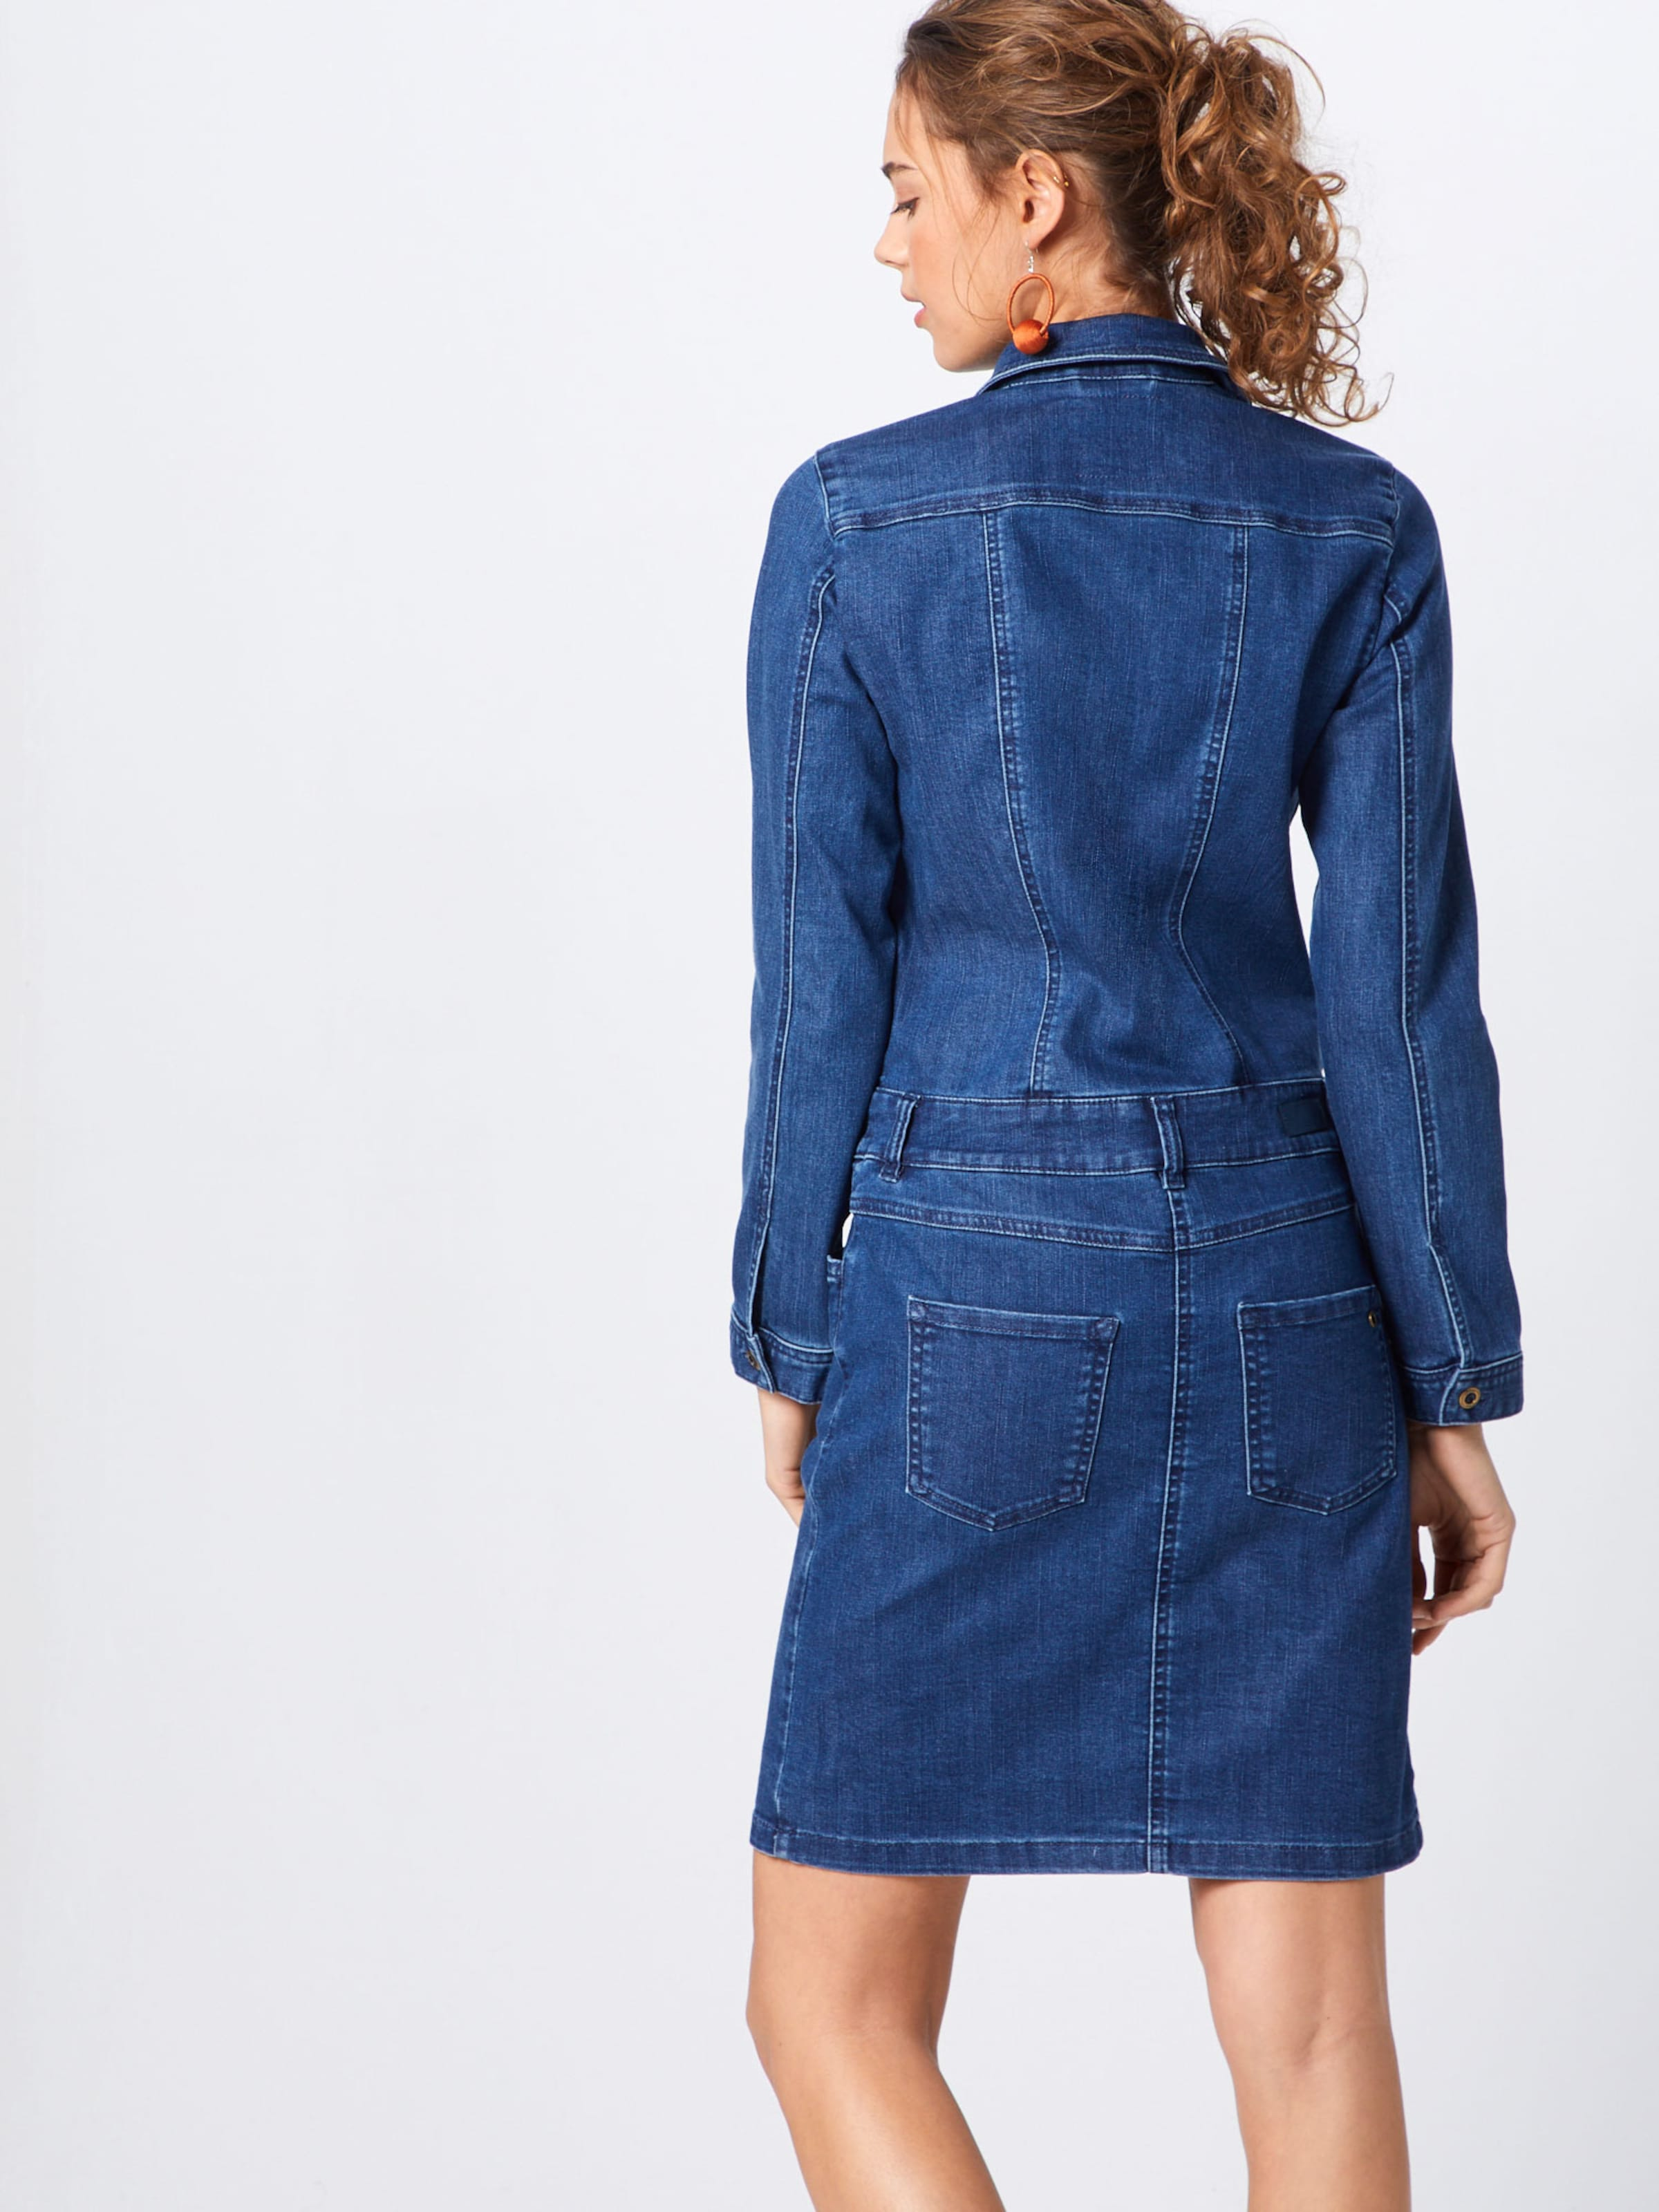 Label Denim oliver In Blue Jeanskleid S Red zGSVUqLpM